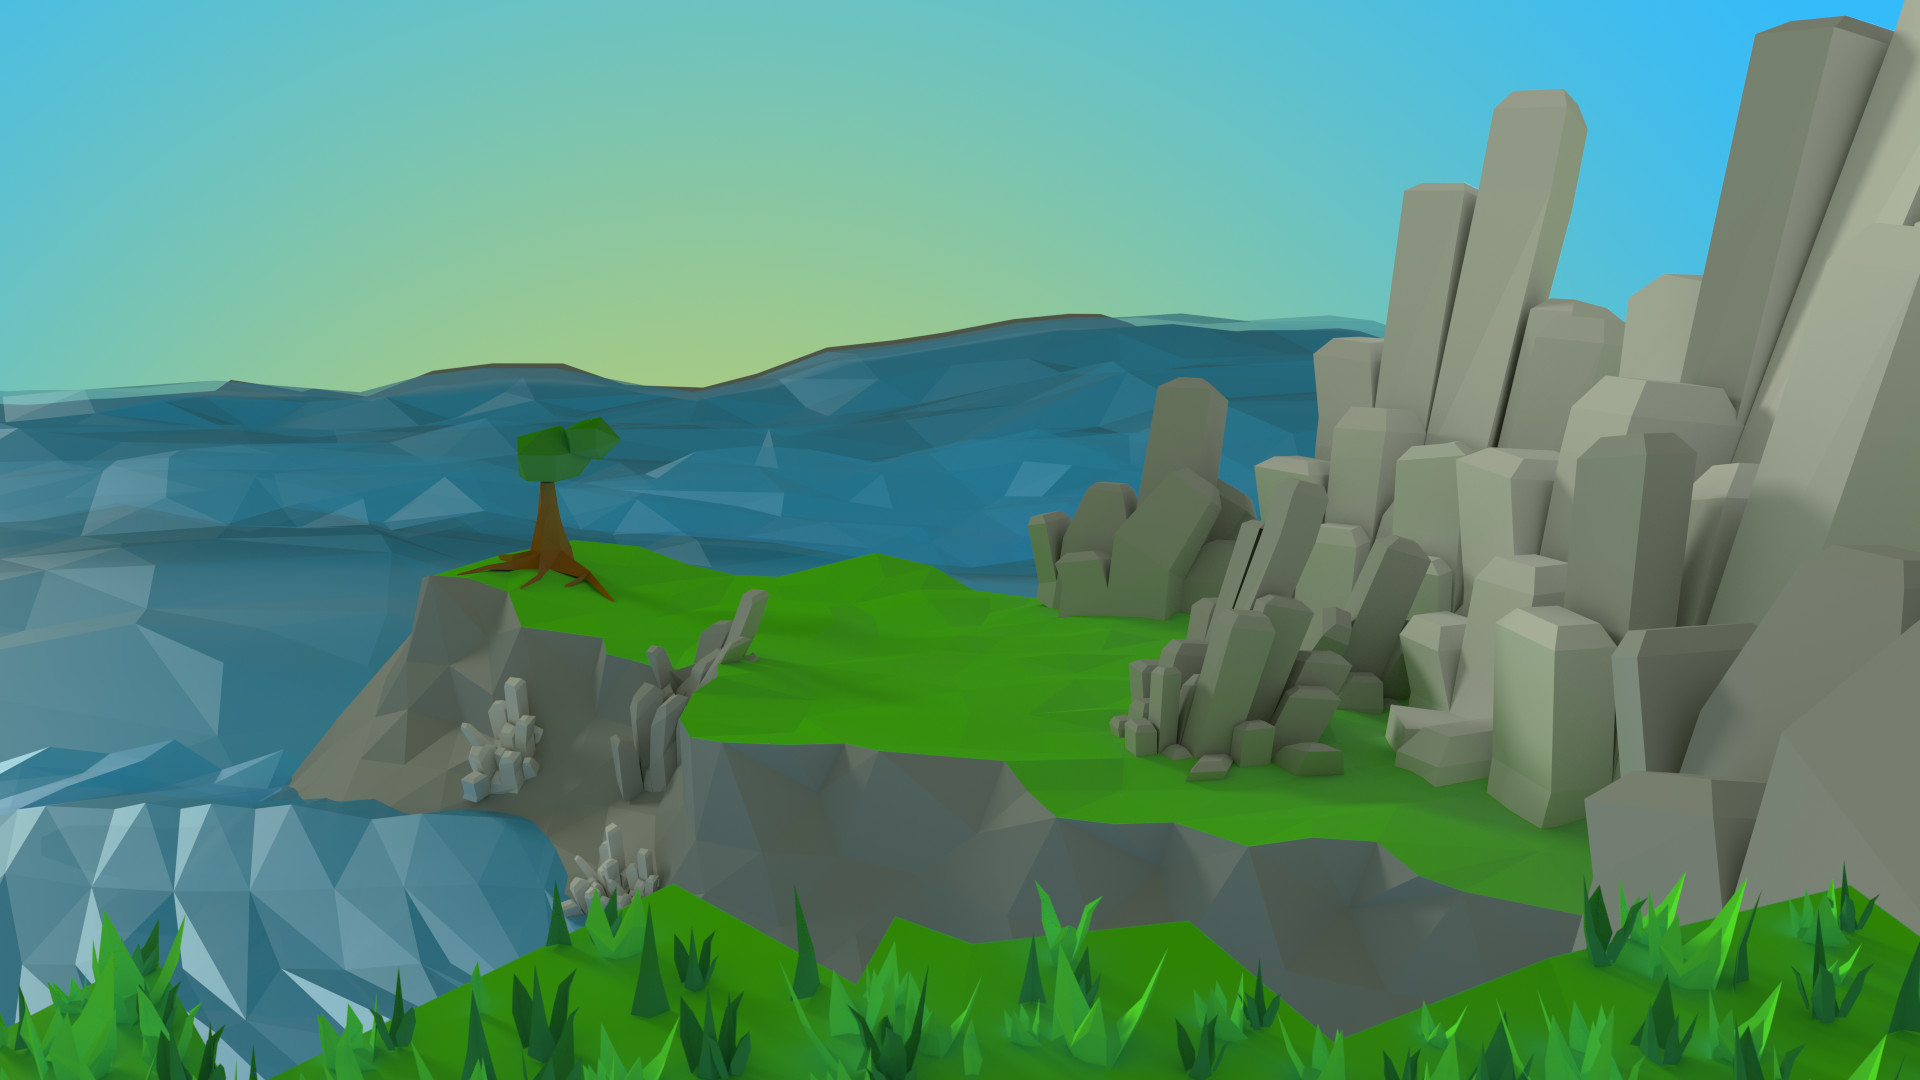 Andrew weir seaside low poly by piplington d6kd880